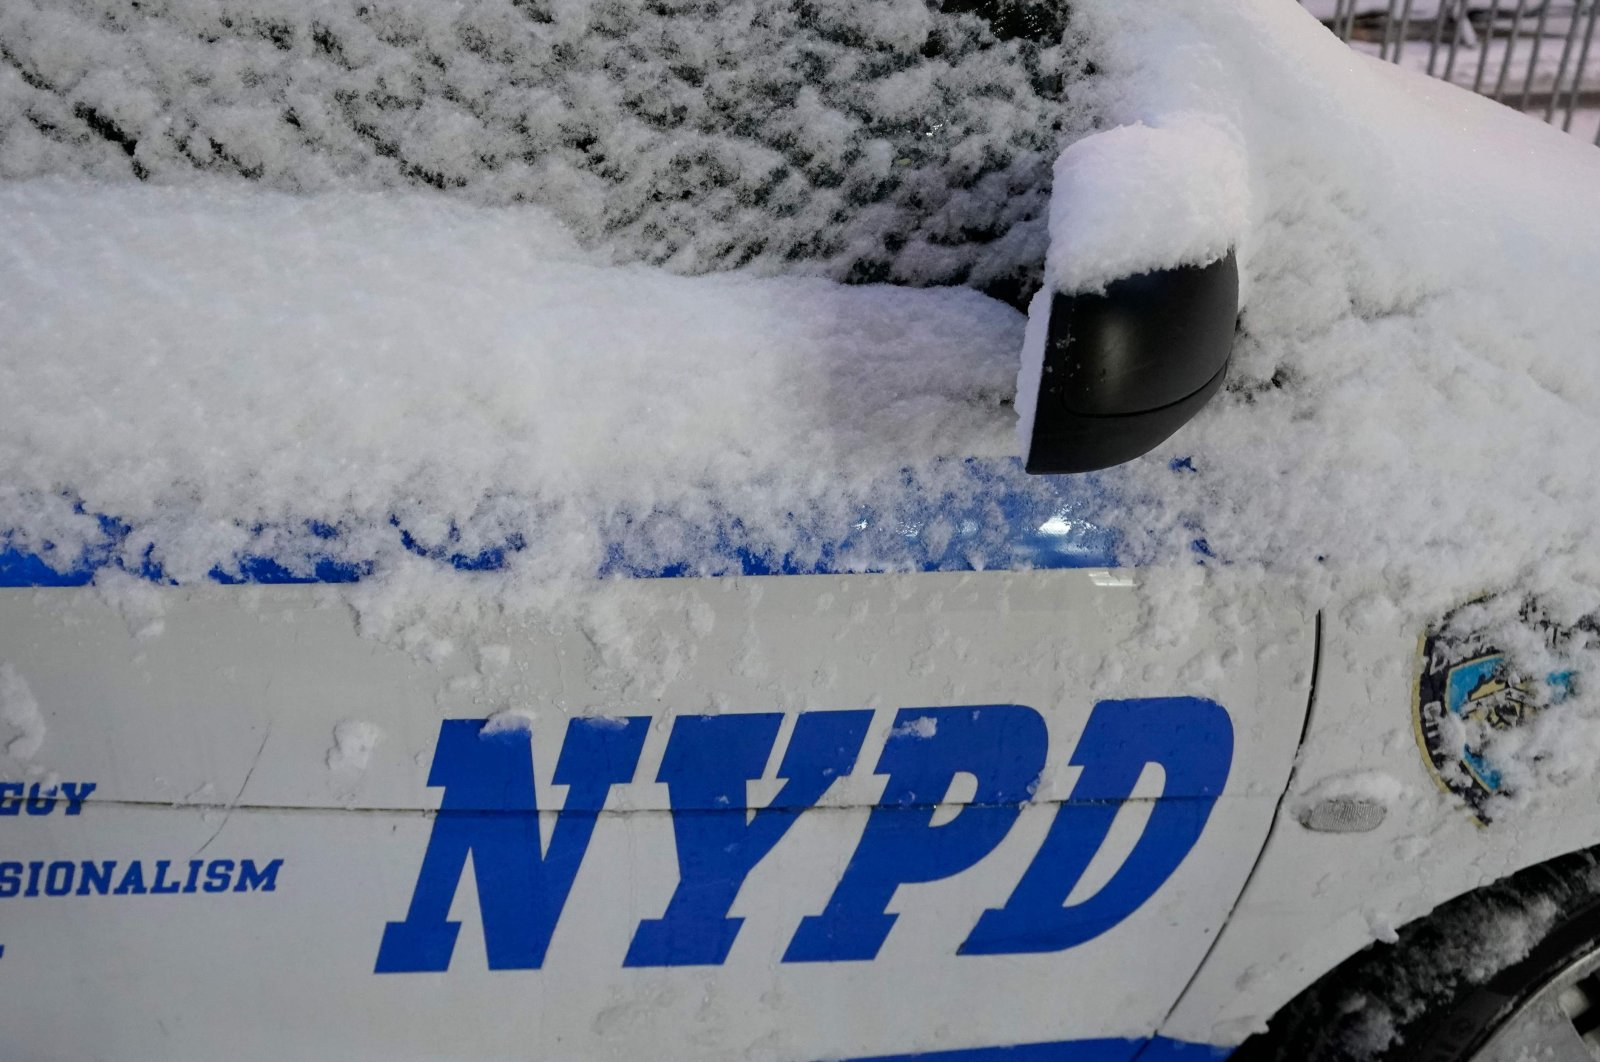 An NYPD police car is seen in the snow in New York, Dec. 17, 2020. (AFP Photo)